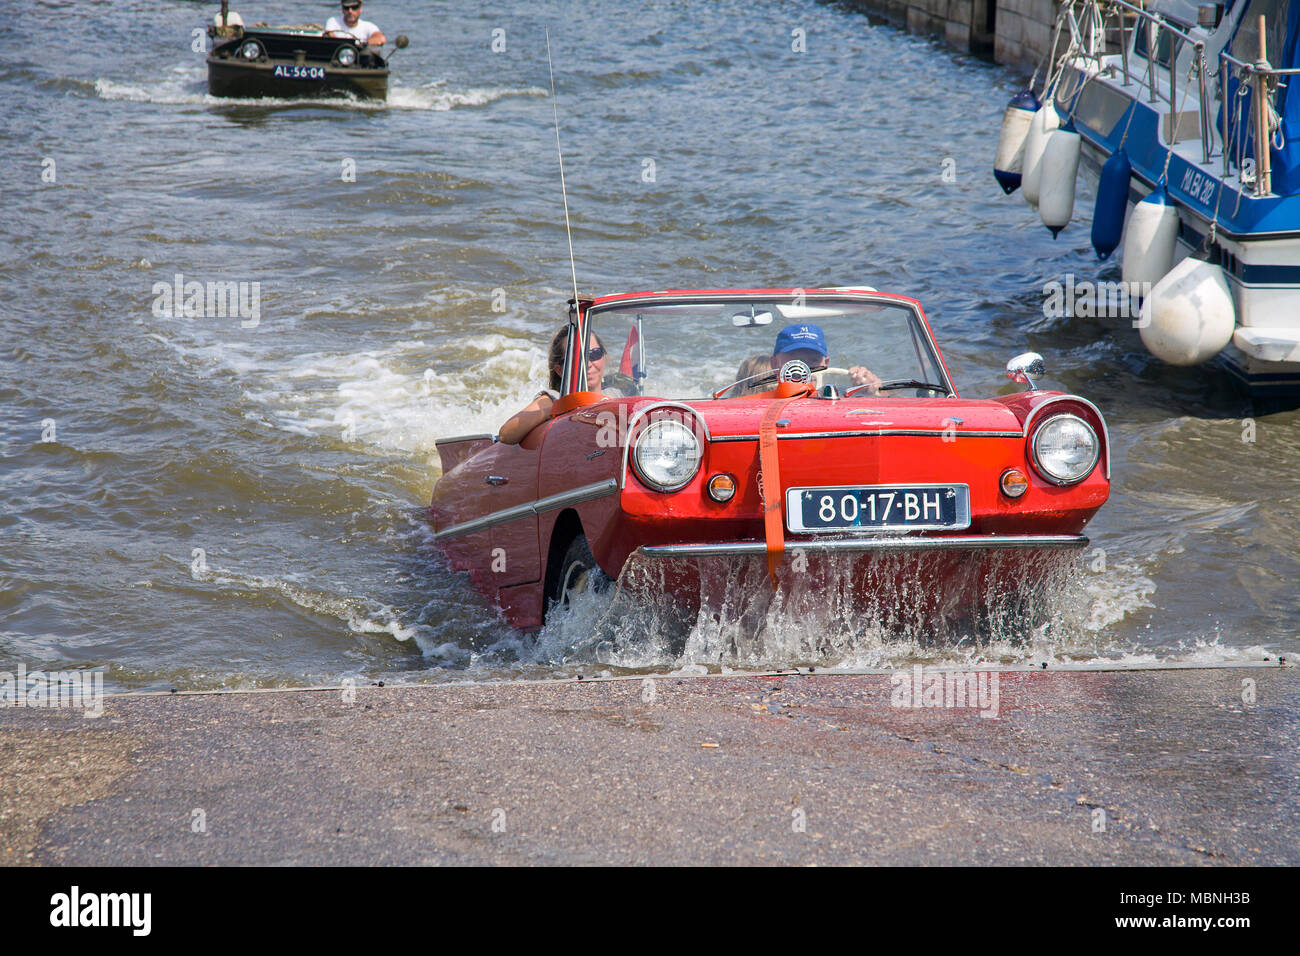 Amphic car, a german amphibious vehicle driving out of water at Moselle river, Cochem, Rhineland-Palatinate, Germany Stock Photo